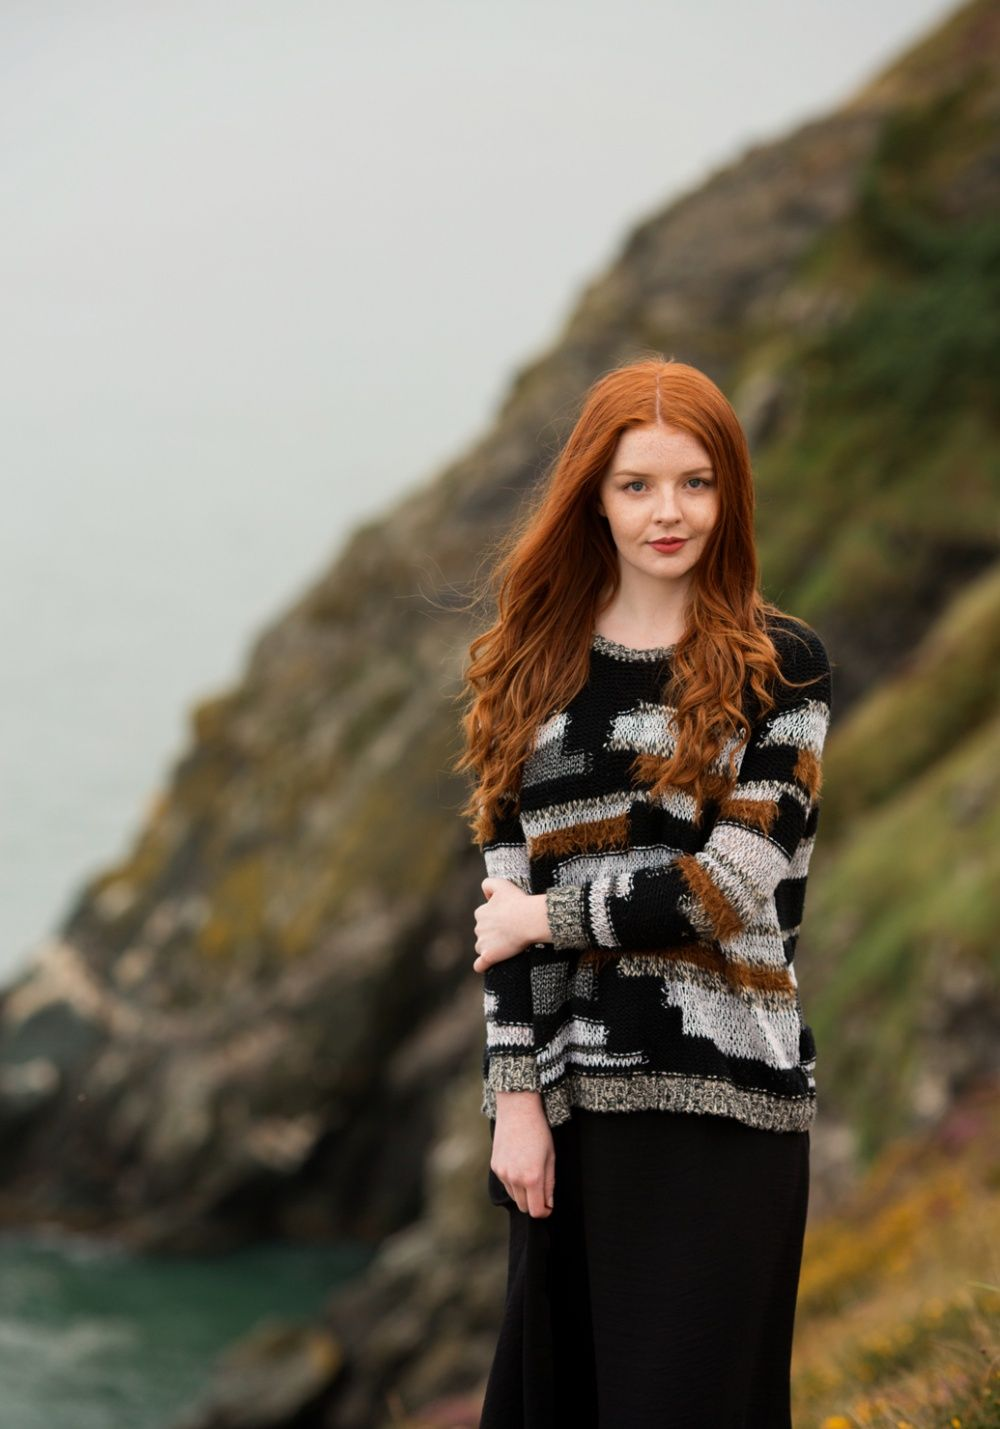 This Photographer Captured 130 Images Showing the Stunning Beauty ofRedheads This Photographer Captured 130 Images Showing the Stunning Beauty ofRedheads new foto